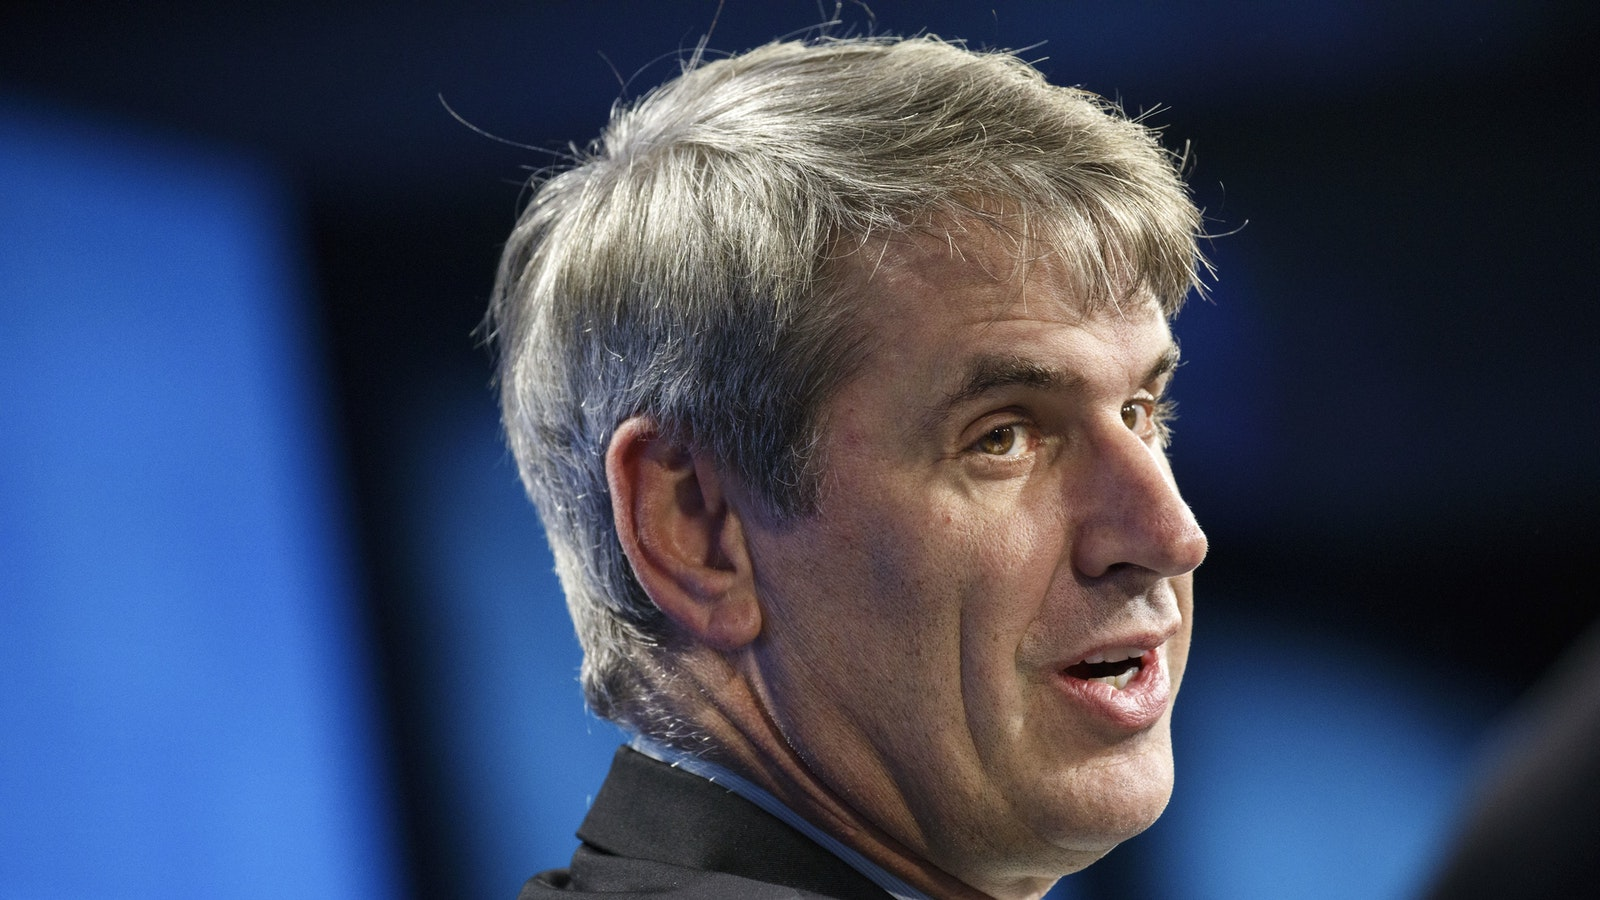 Uber board director and shareholder Bill Gurley. Photo by Bloomberg.